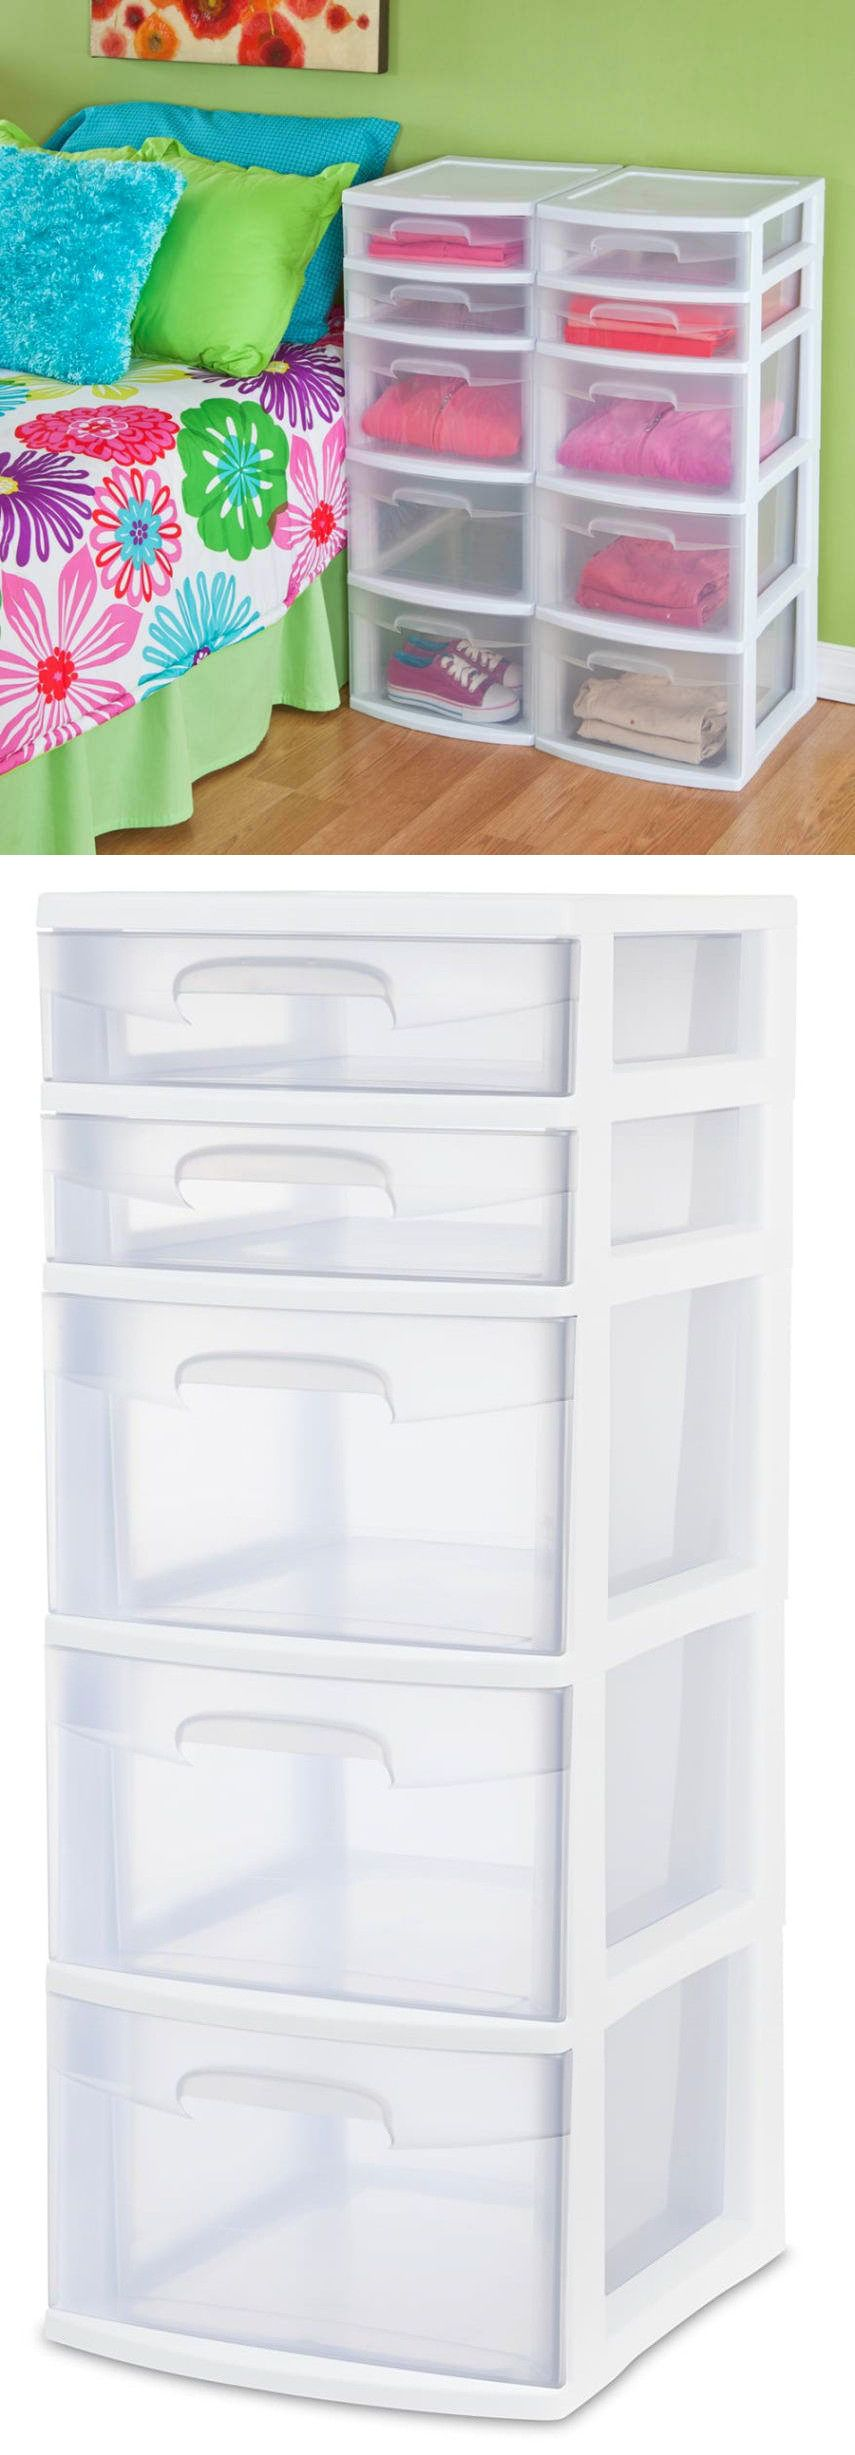 Storage boxes drawer tower plastic organizer home cabinet